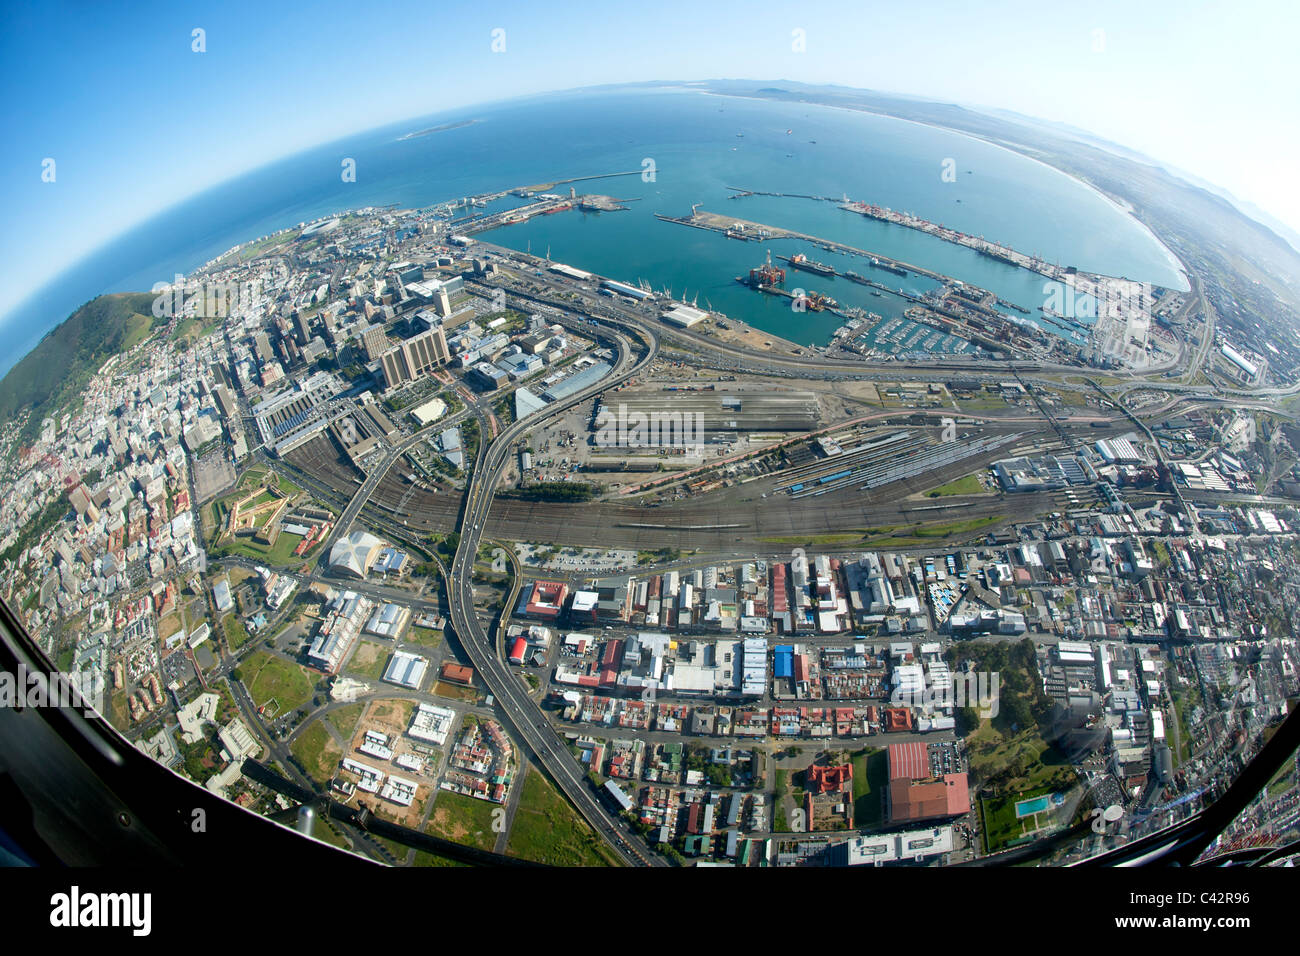 City Of Cape Town: Fish-eye Lens Aerial View Of The City Of Cape Town In